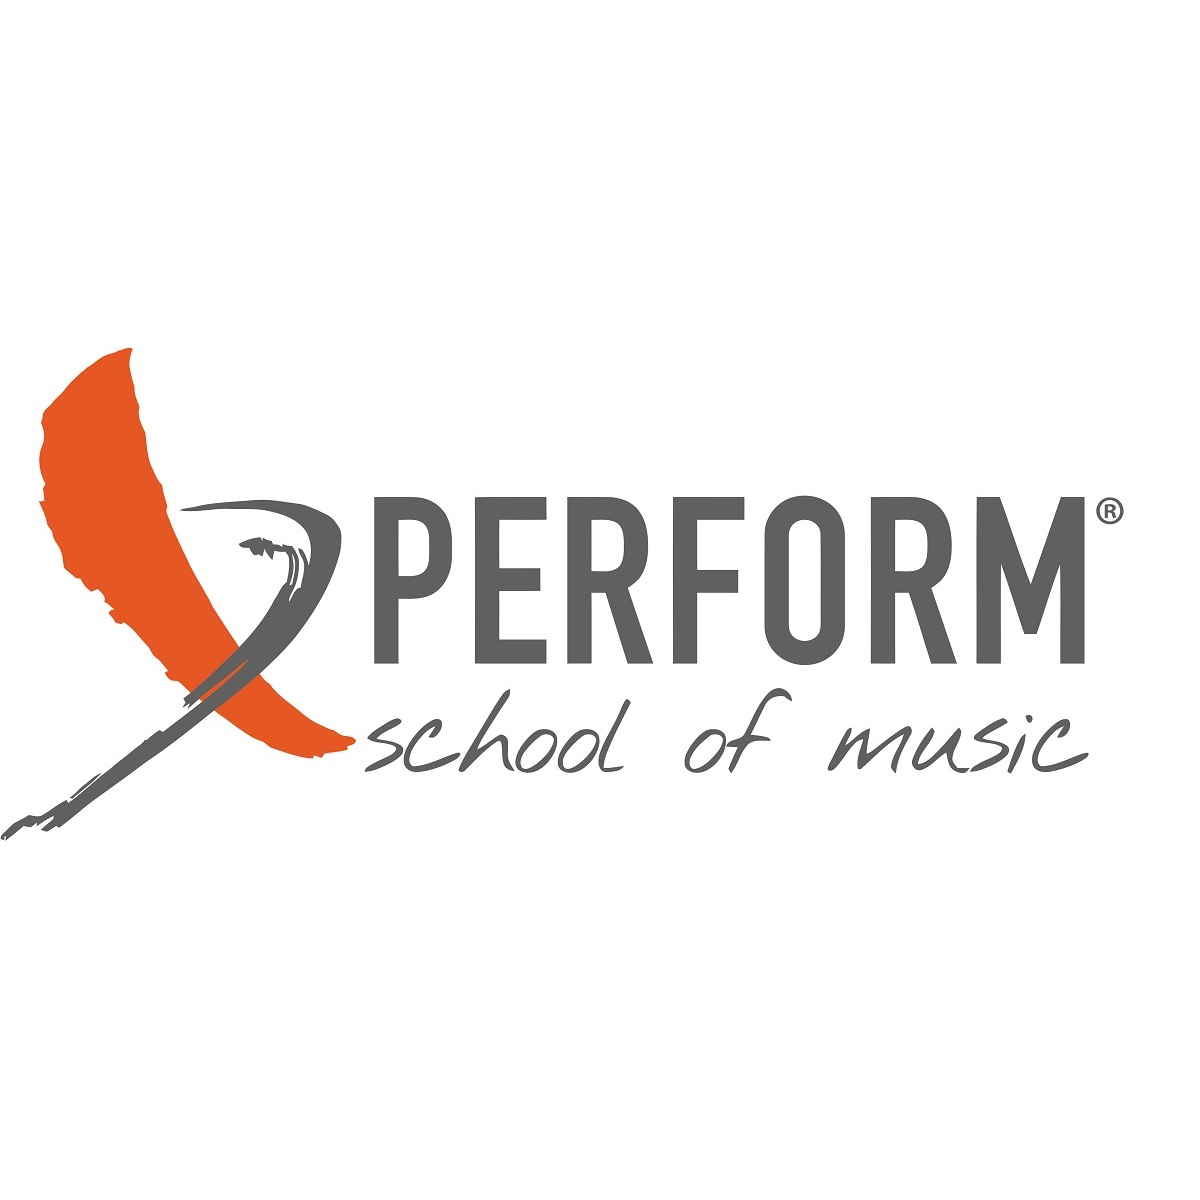 Perform School of music